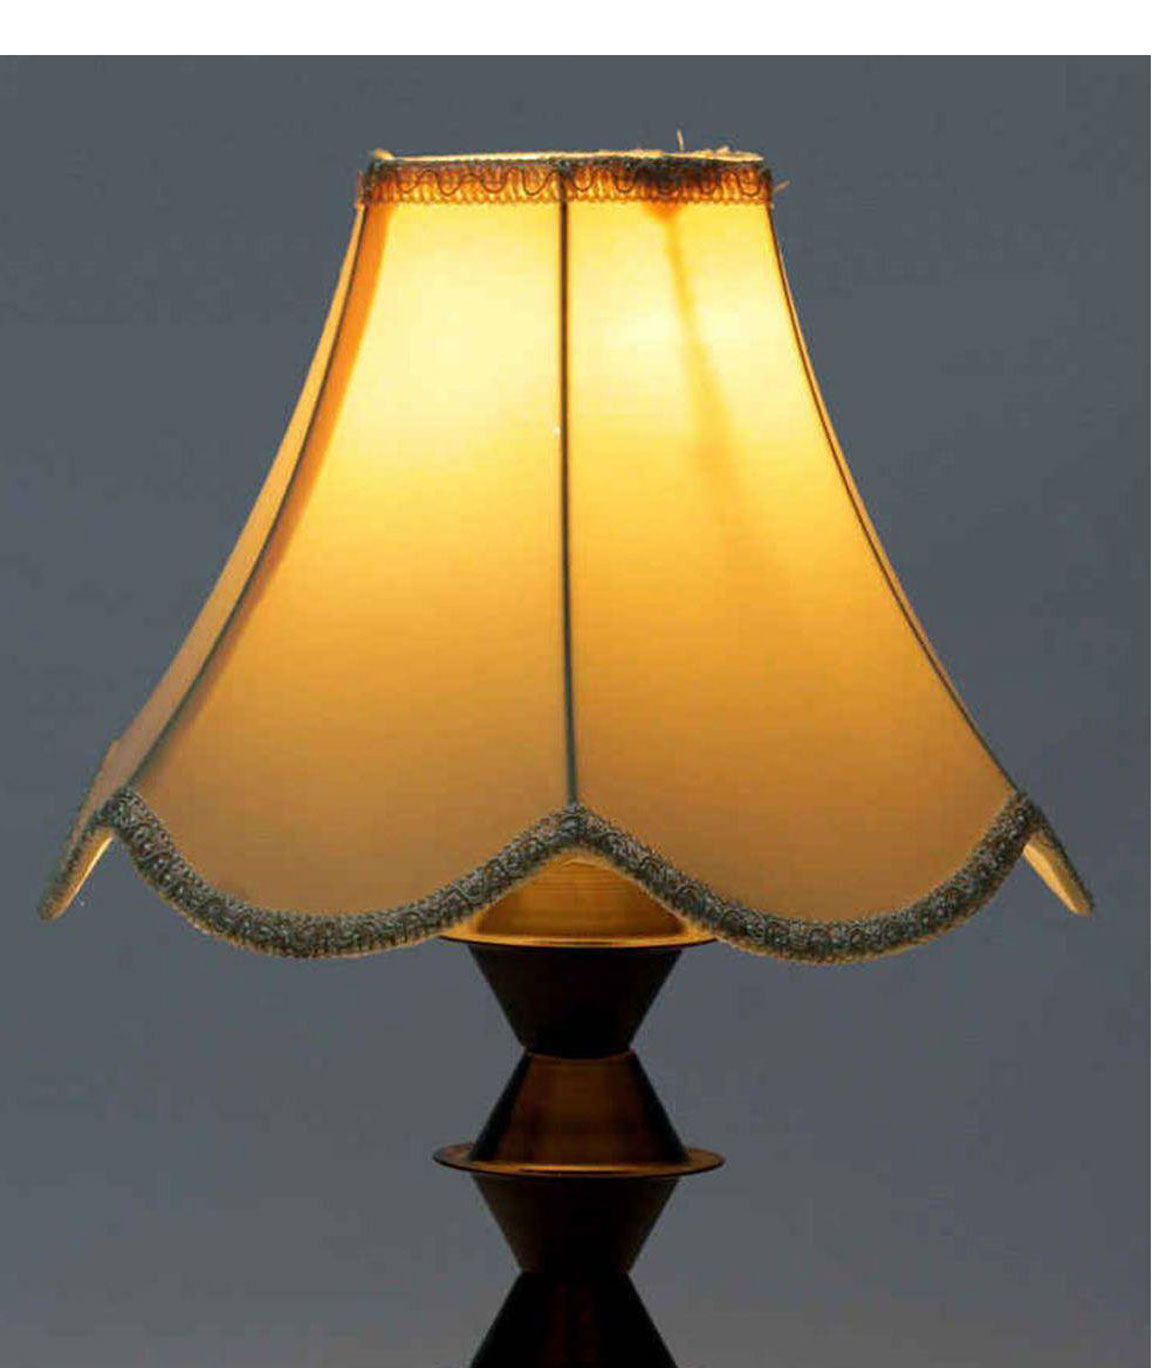 RDC 10 Inches Lotus-shaped Cream with Lace Border Lamp Shade for Table Lamp (B22 Holder Ring)